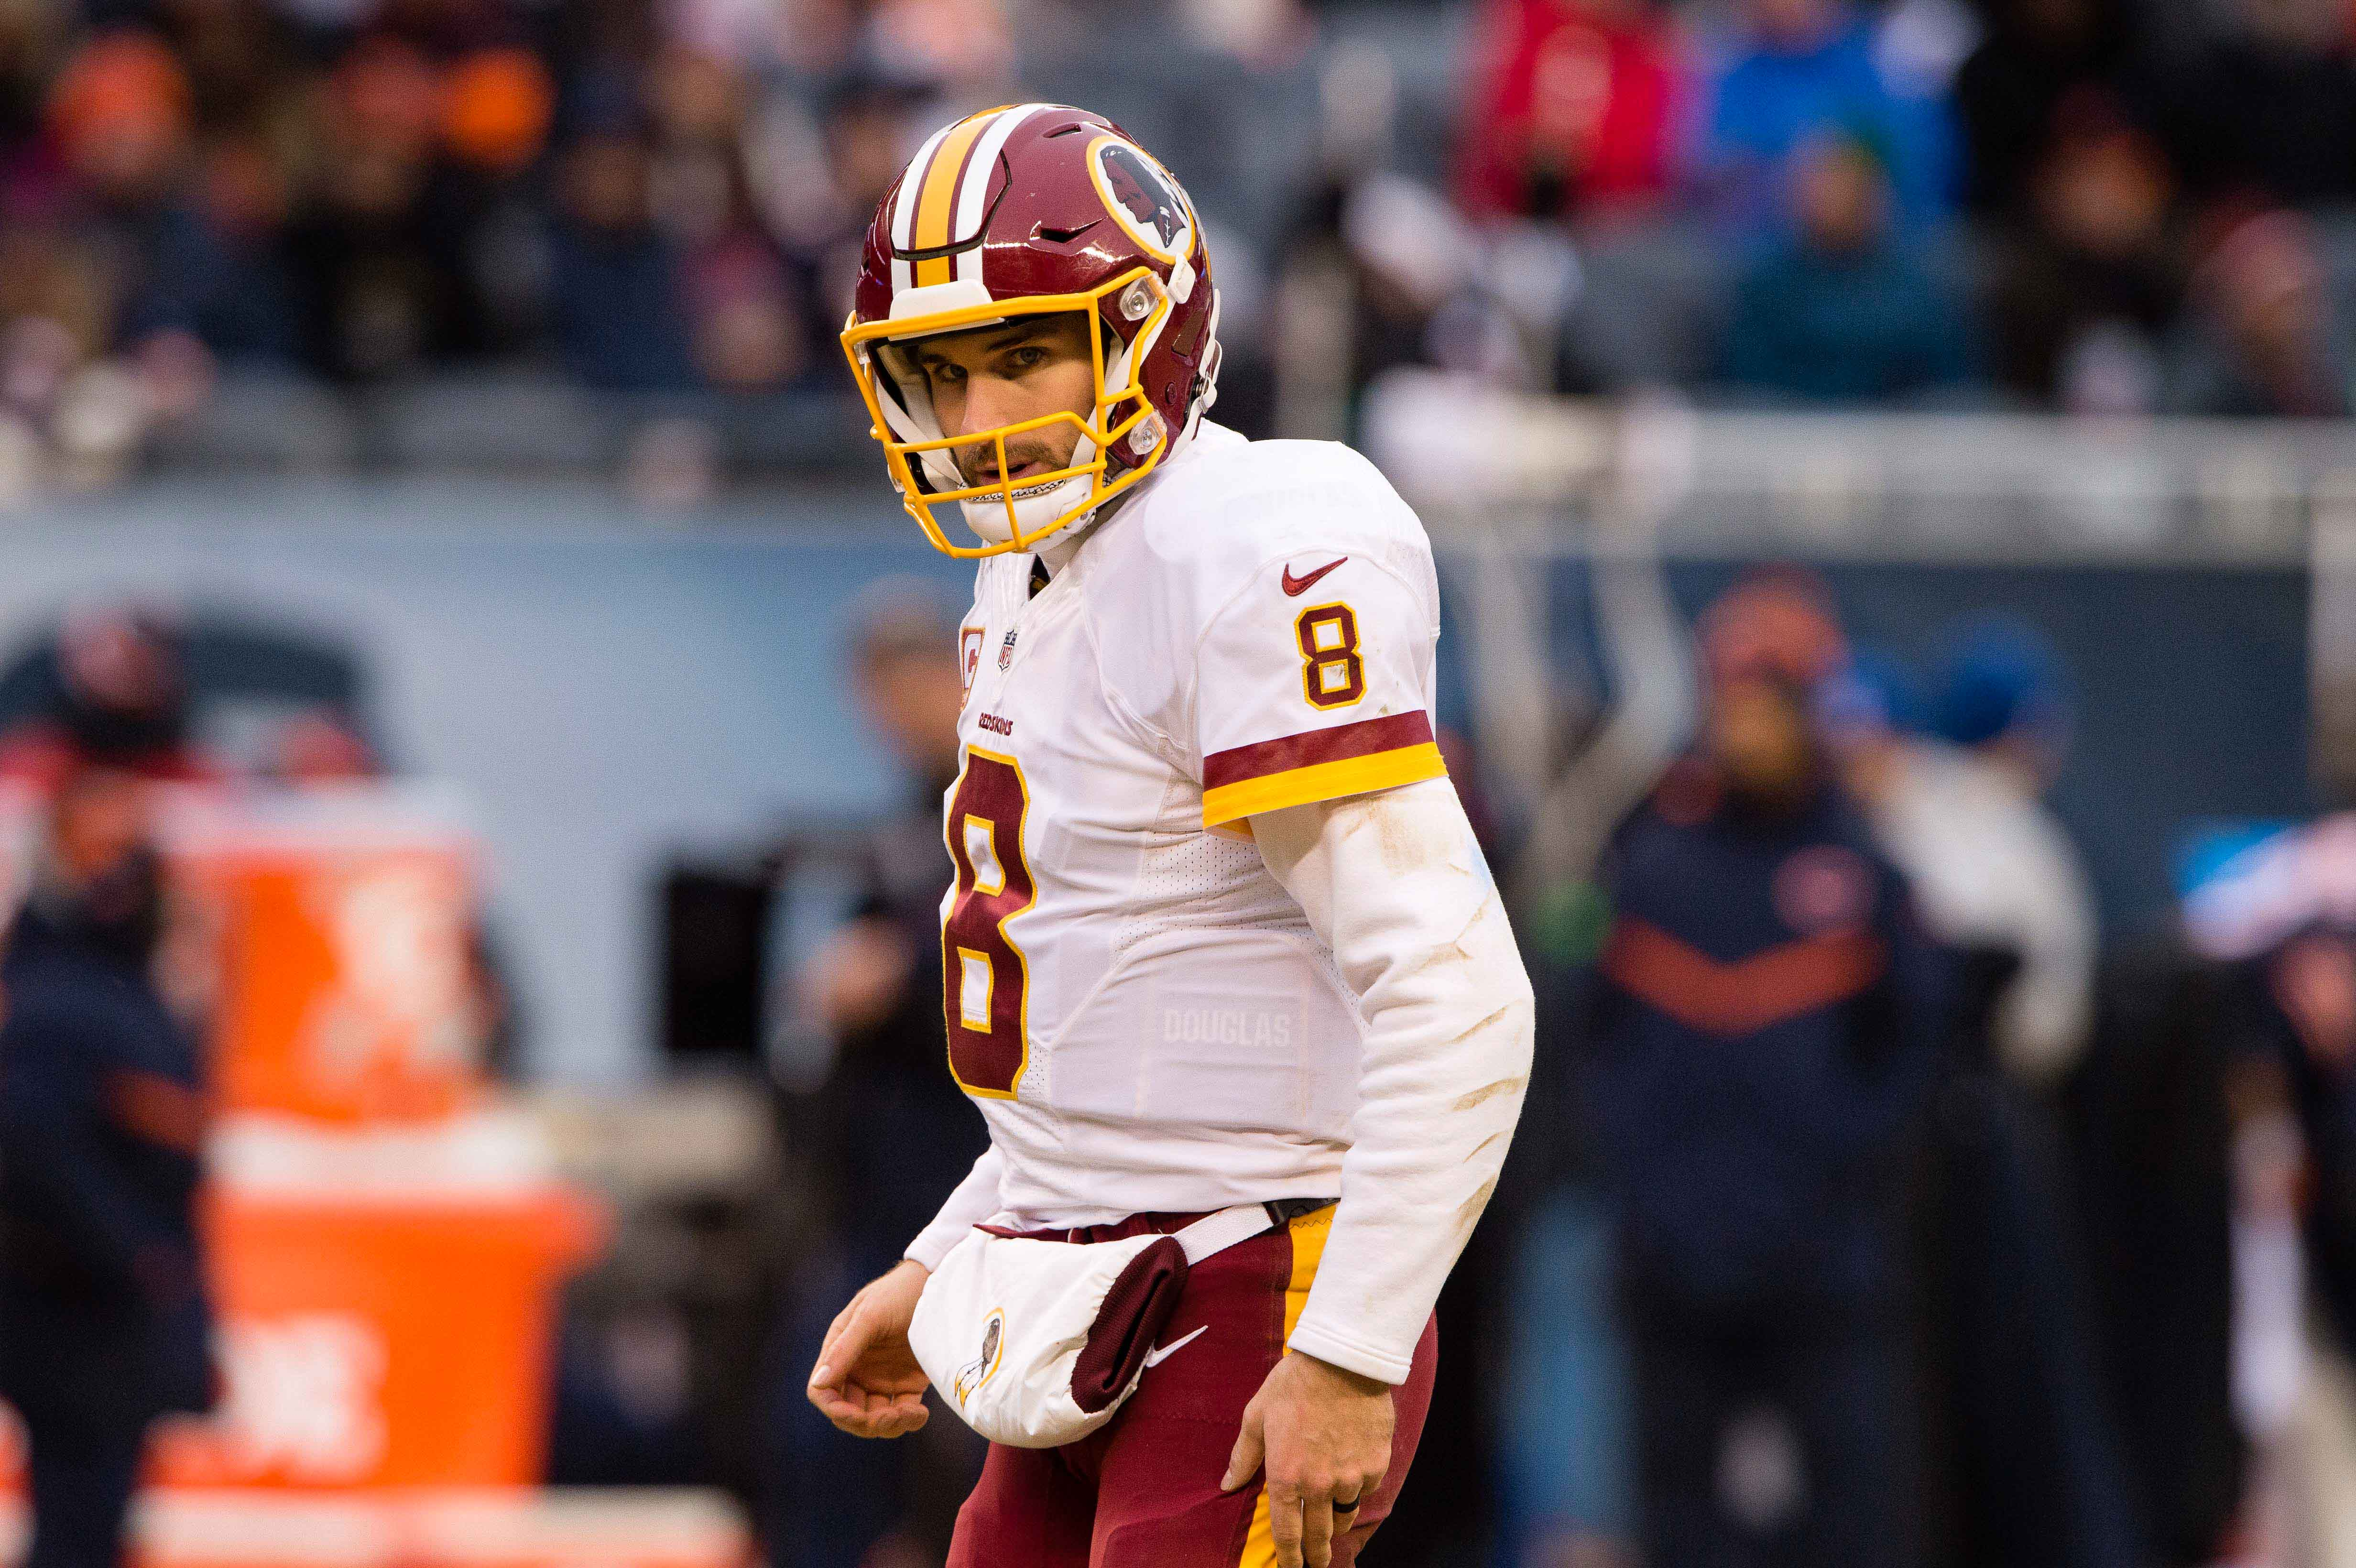 Dec 24, 2016; Chicago, IL, USA; Washington Redskins quarterback Kirk Cousins (8) in action during the game against the Chicago Bears at Soldier Field. The Redskins defeat the Bears 41-21. Mandatory Credit: Jerome Miron-USA TODAY Sports